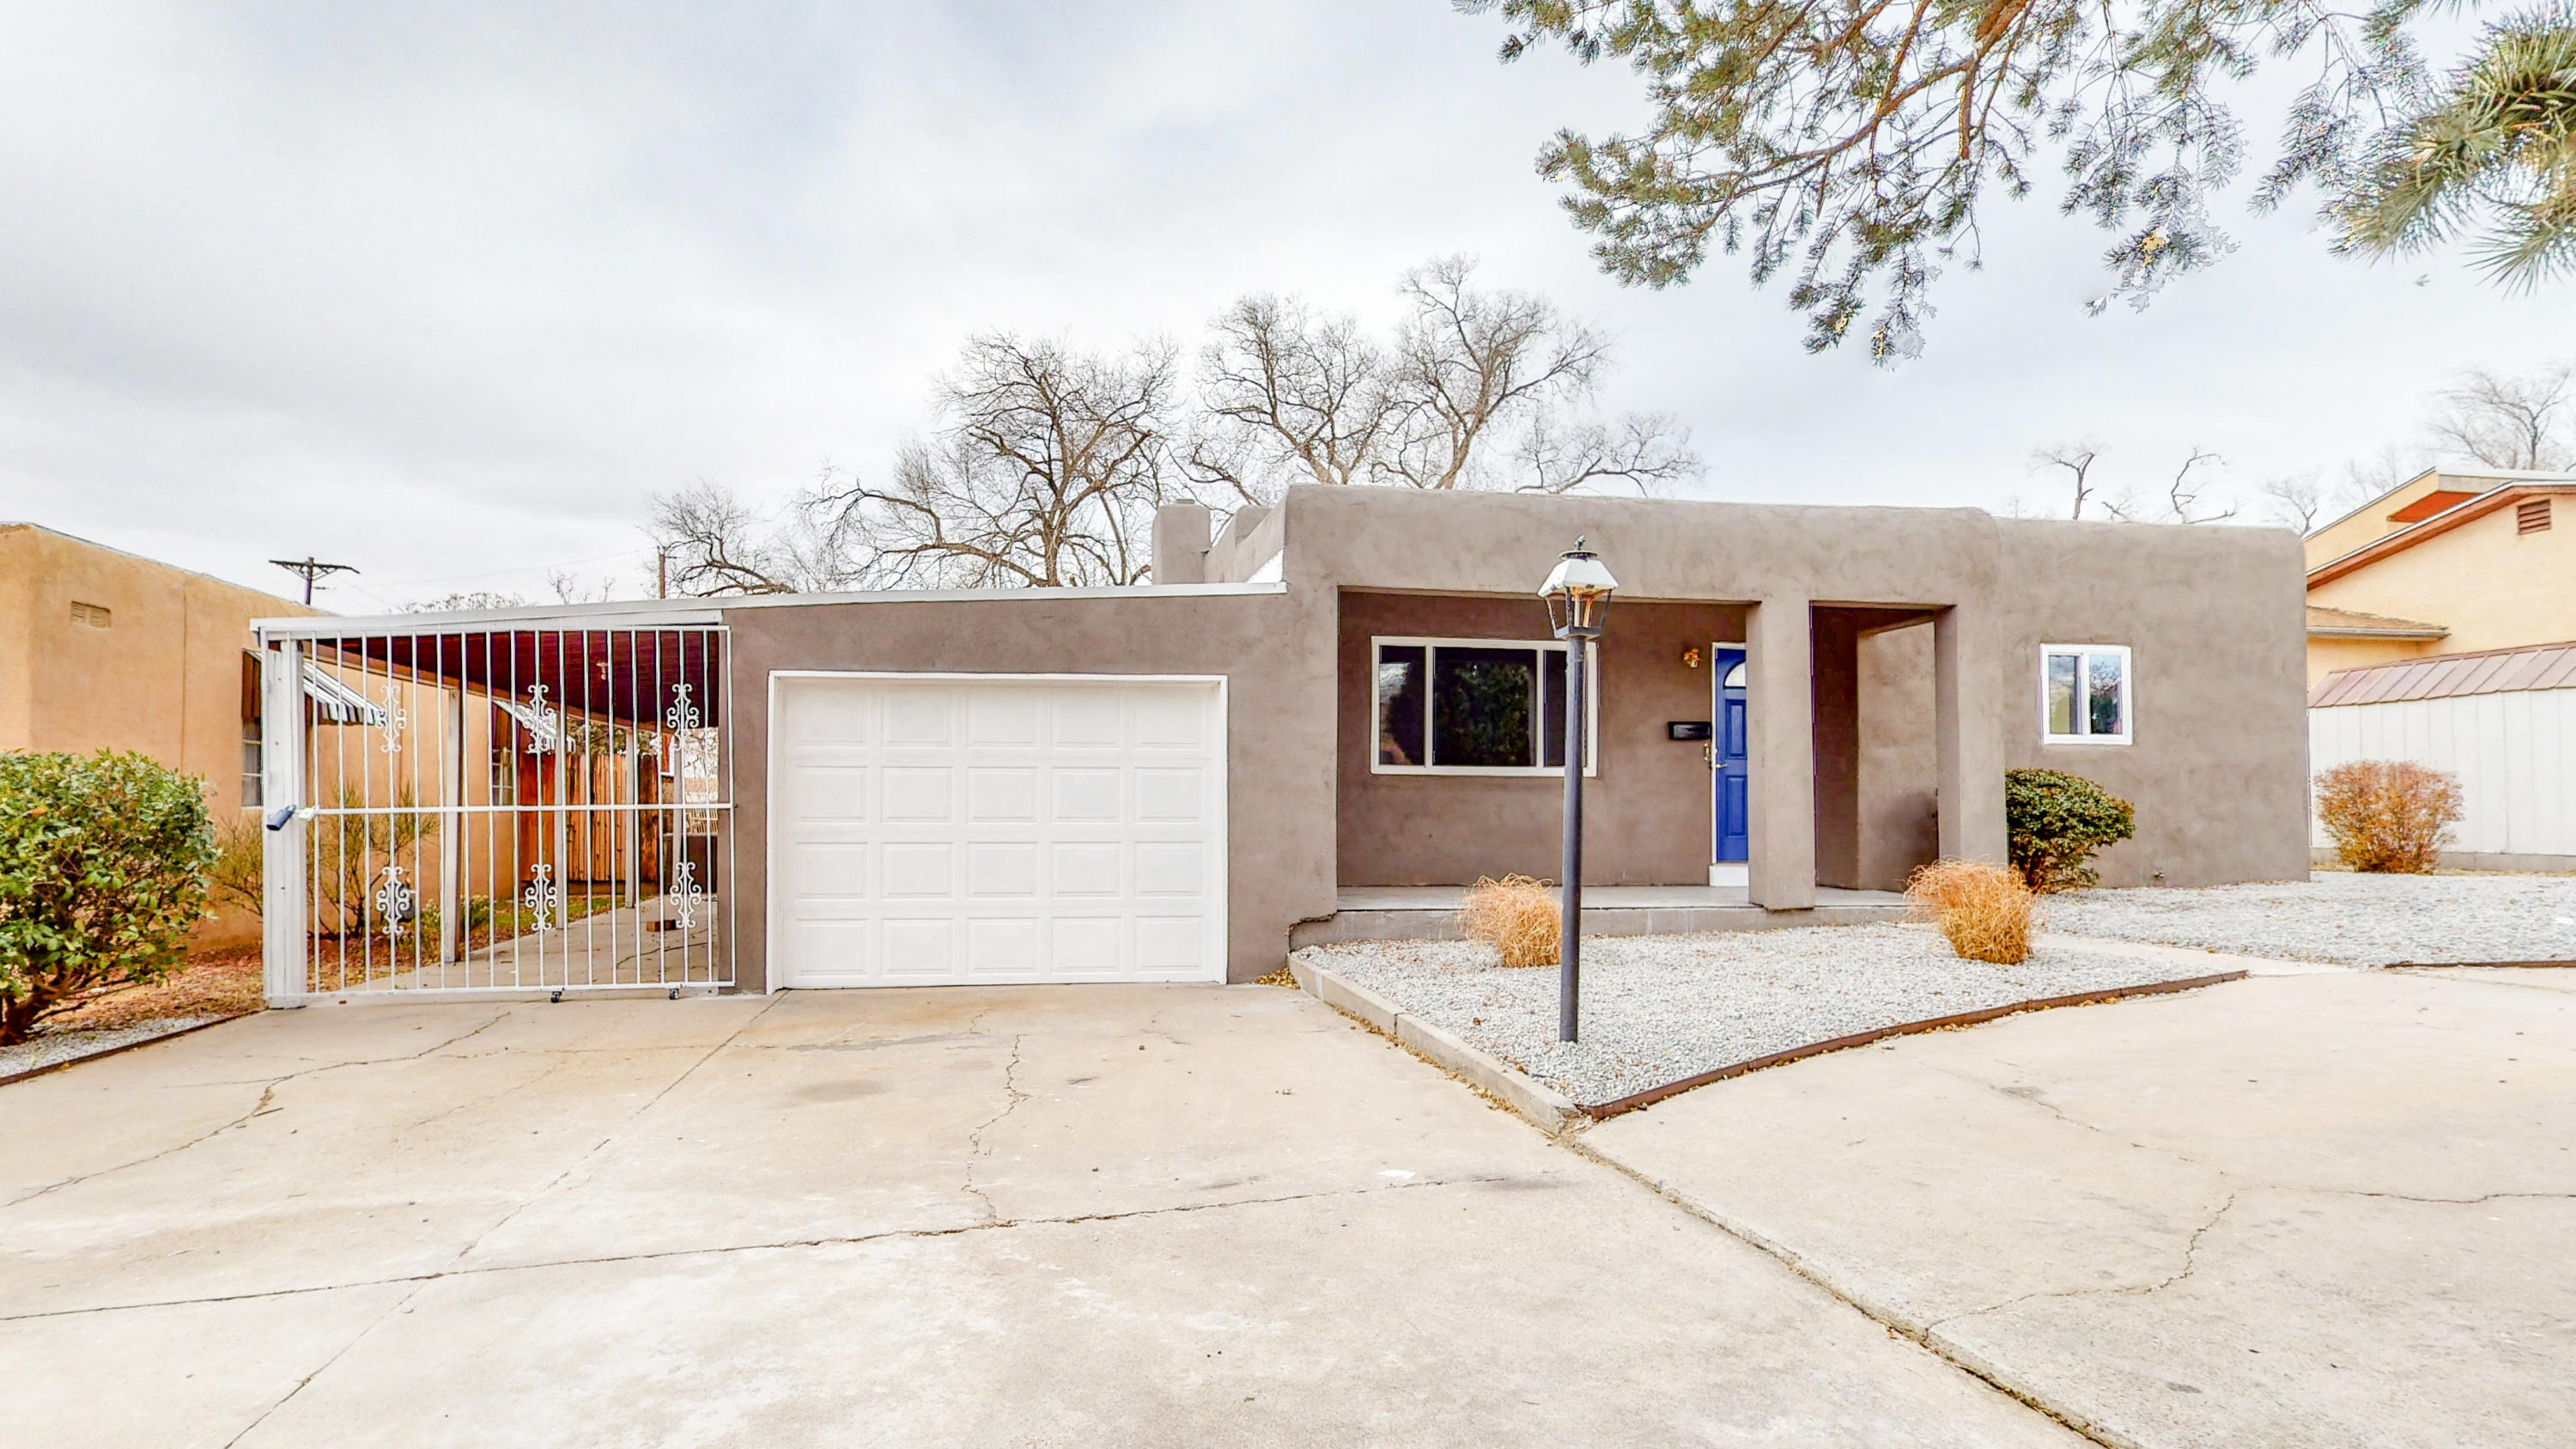 Welcome to Albuquerques UNM south area! Conveniently located near UNM, Kirtland Air Force Base, the airport, and downtown... This charmer of a home is guaranteed too excite! This home boast all new xeriscape. New elastomeric stucco paint. New windows (2020)! New TPO roof (2020). Open concept living. Original restored hardwood floors. A brand new kitchen with stainless steel appliances, new cabinets quartz countertops and a showstopping backsplash (2020! Energy efficient ductless mini split's zoned privately for the ideal temperature for everyone in the house! A fully upgraded brand new bathroom (2020)... A massive backyard for every entertainers delight is sure to impress your guests. Not to mention one of the only FINISHED oversized two car garage is in the area!